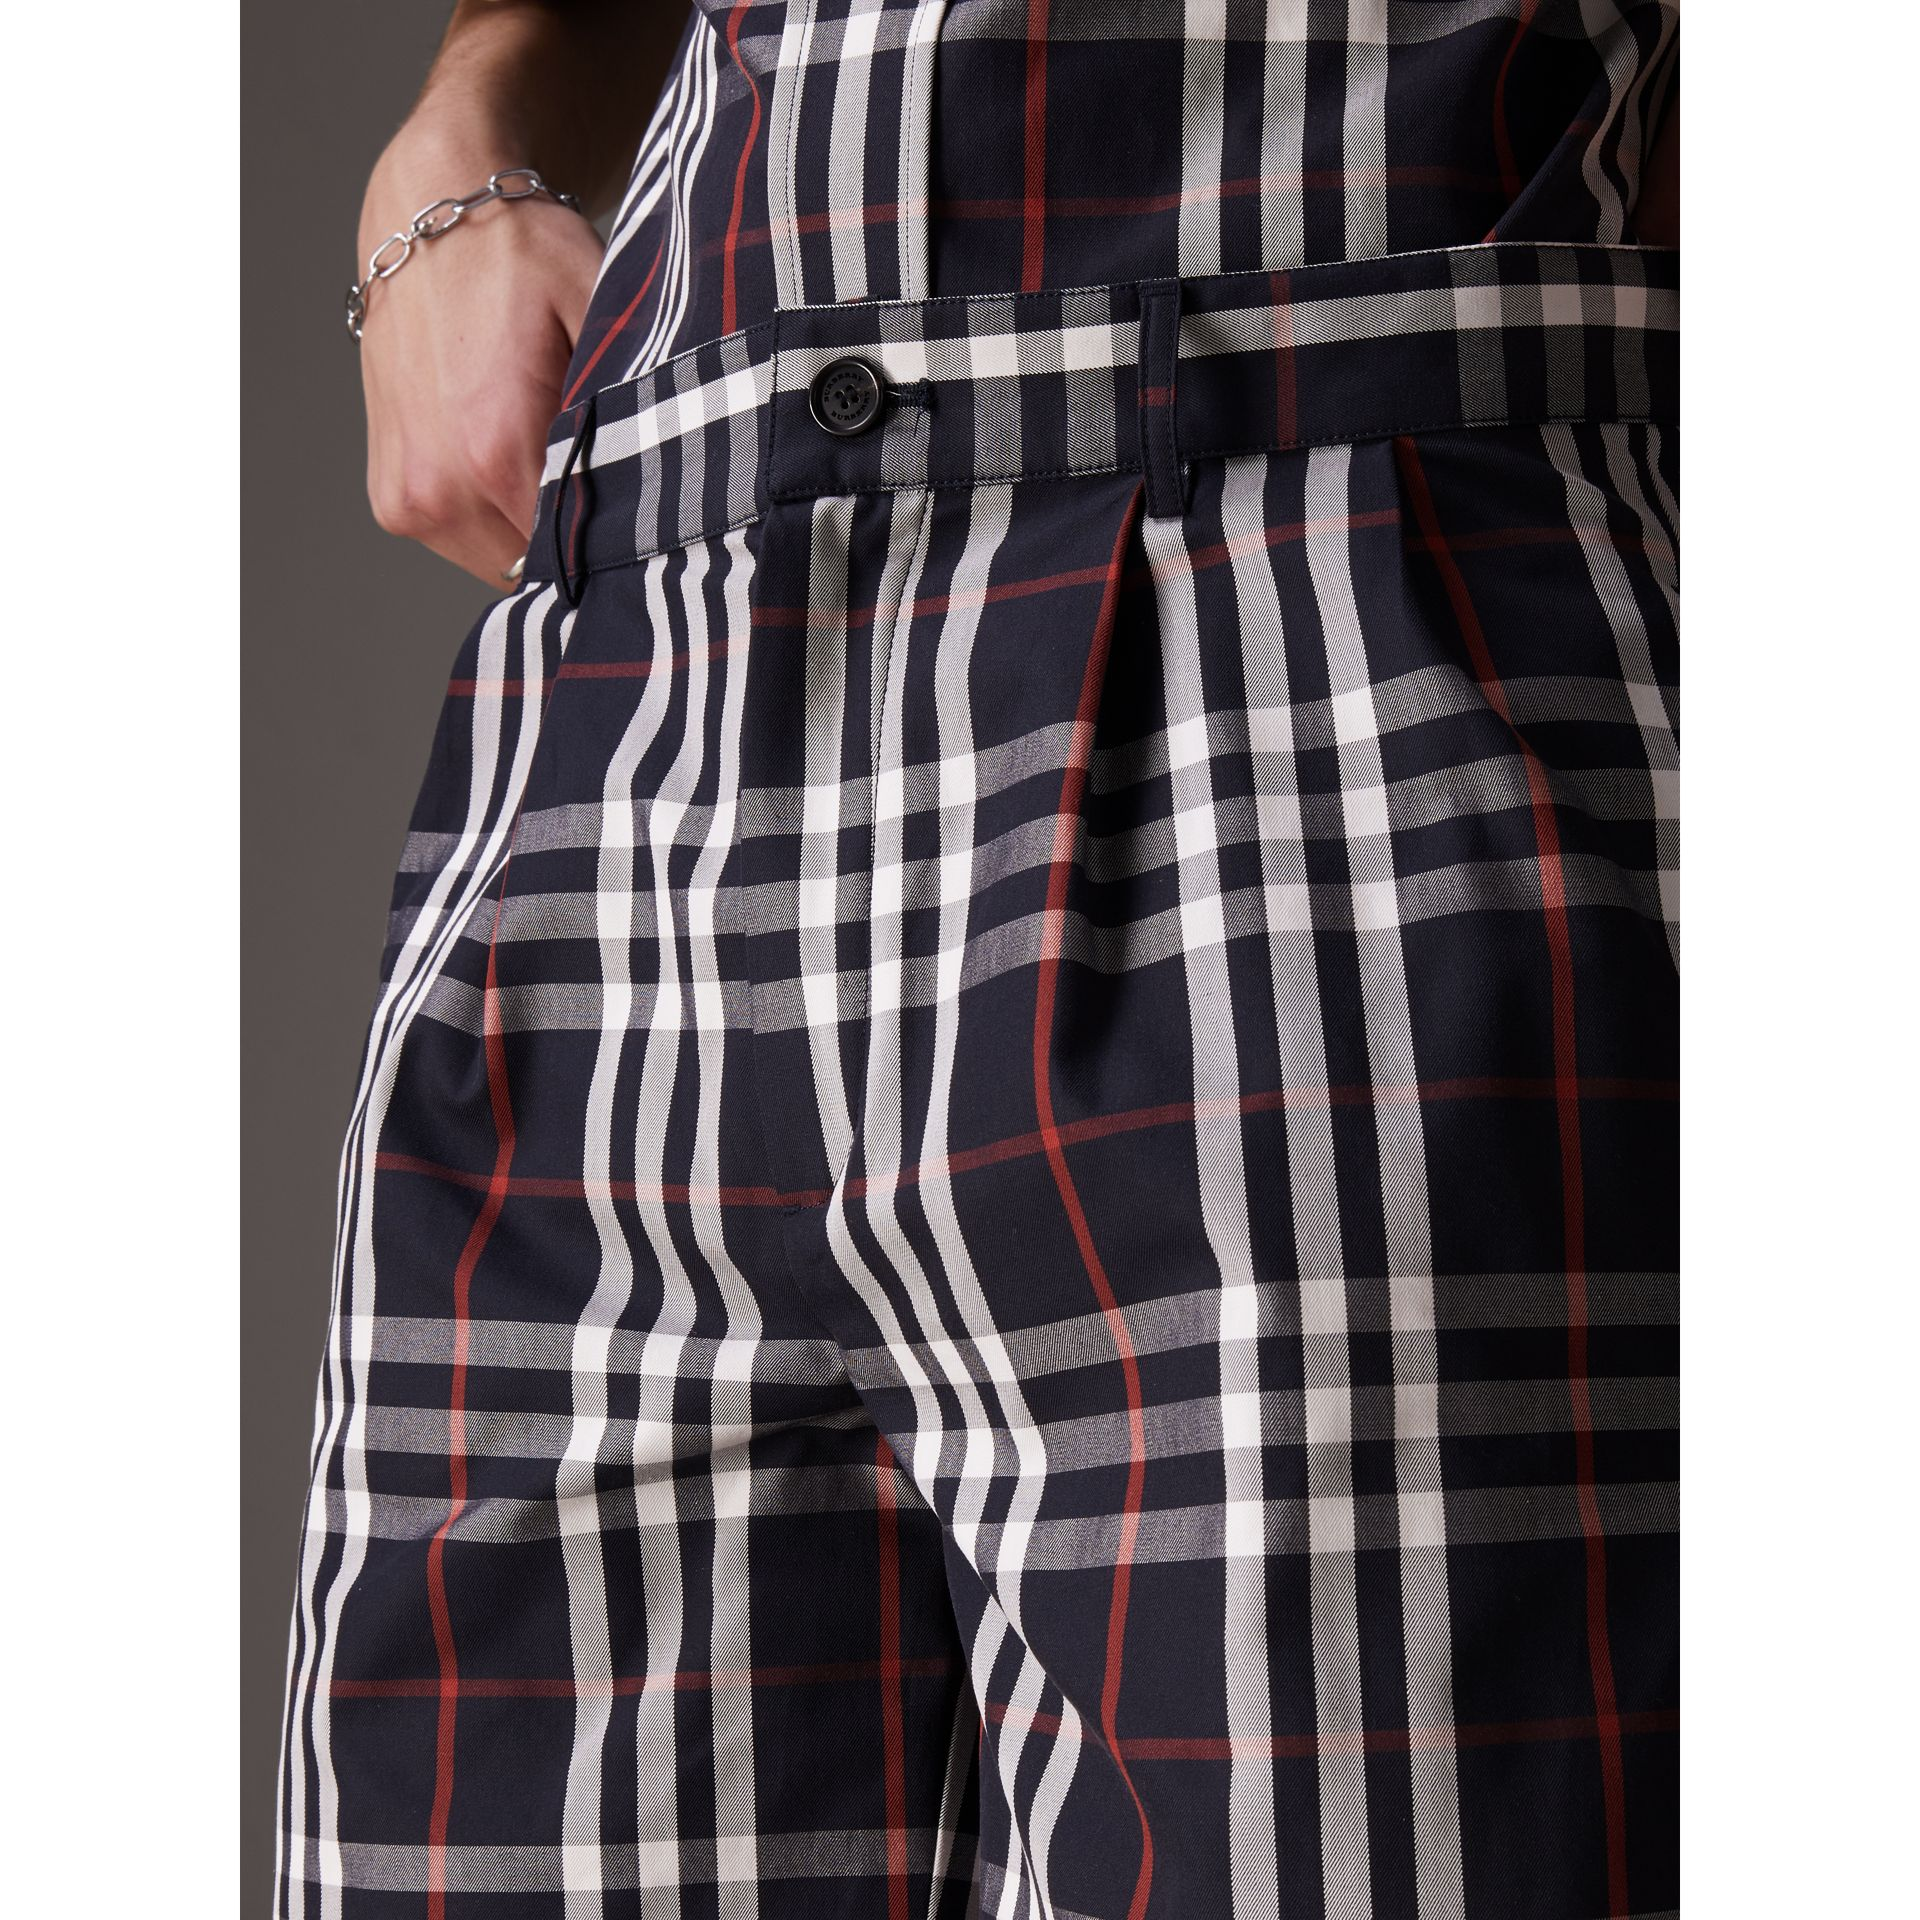 Gosha x Burberry Tailored Shorts in Navy | Burberry - gallery image 1